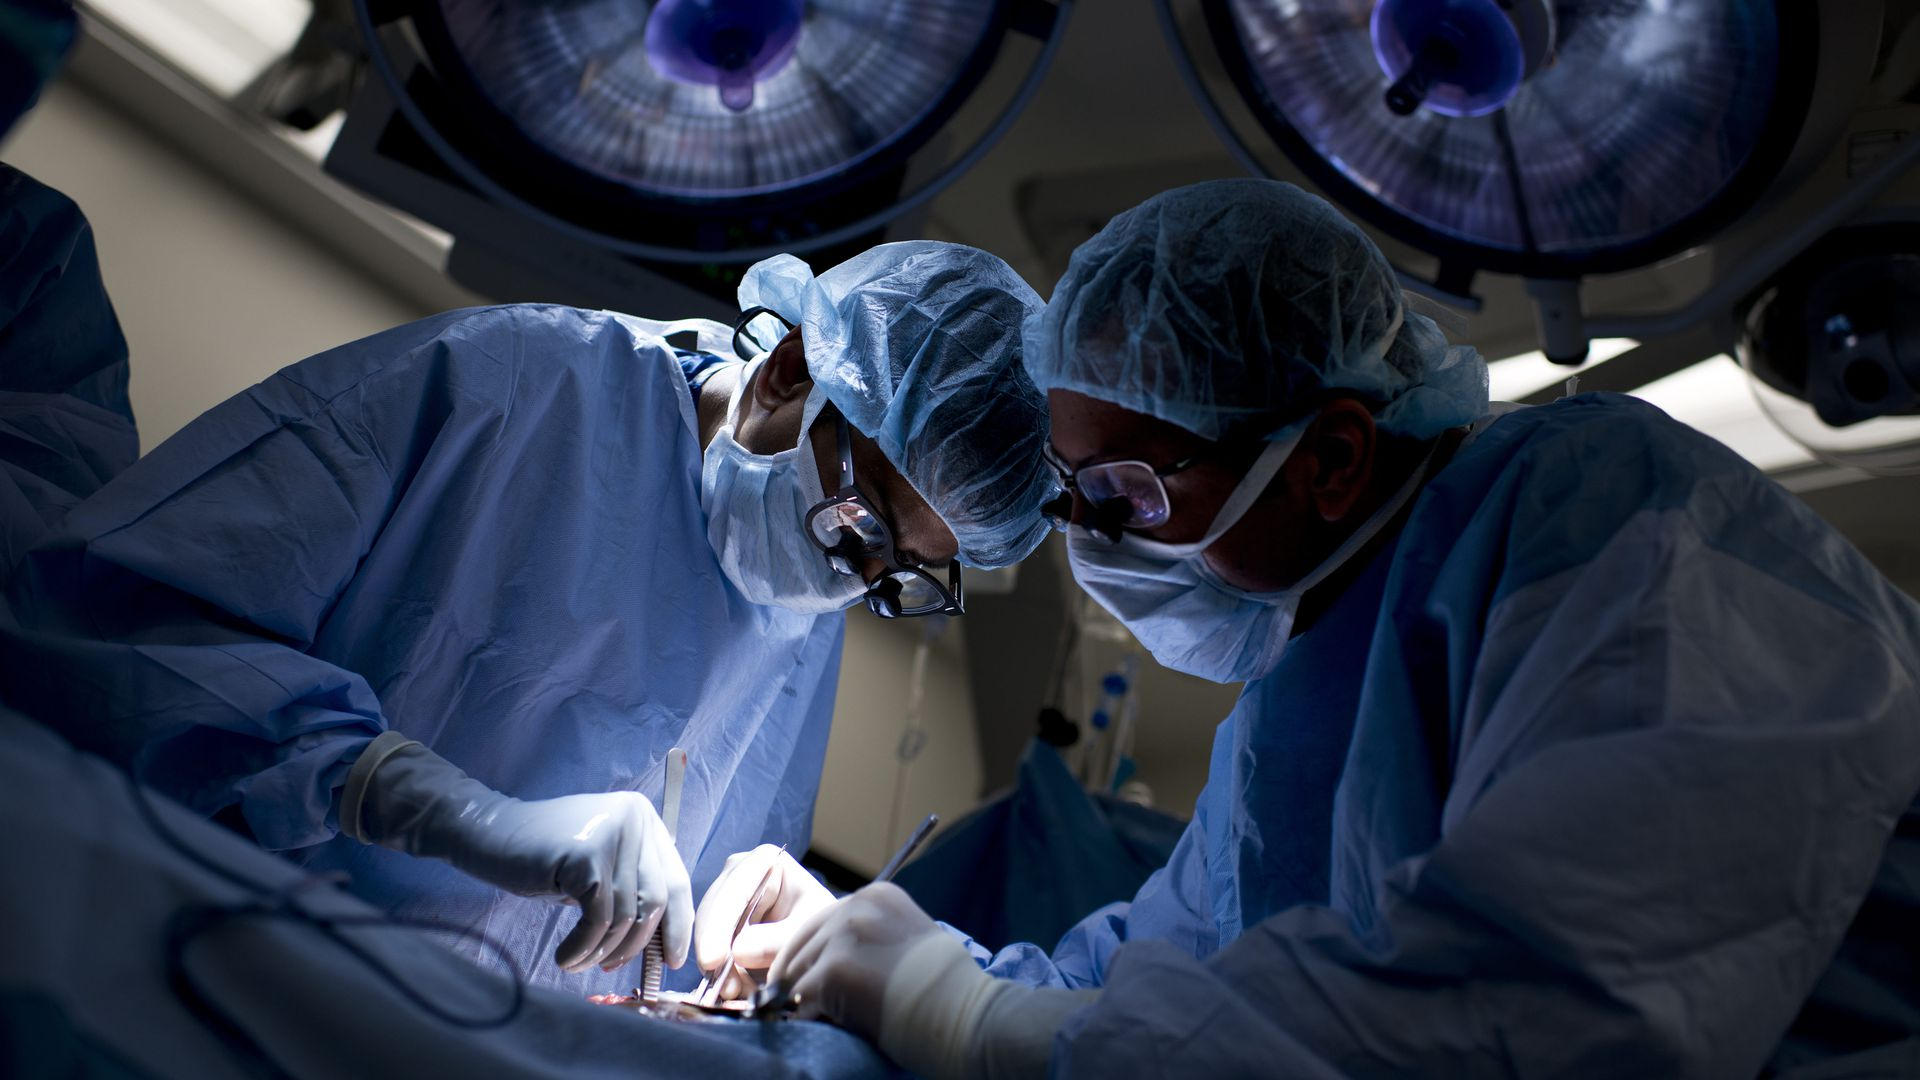 Johns Hopkins surgeons operate on a patient.